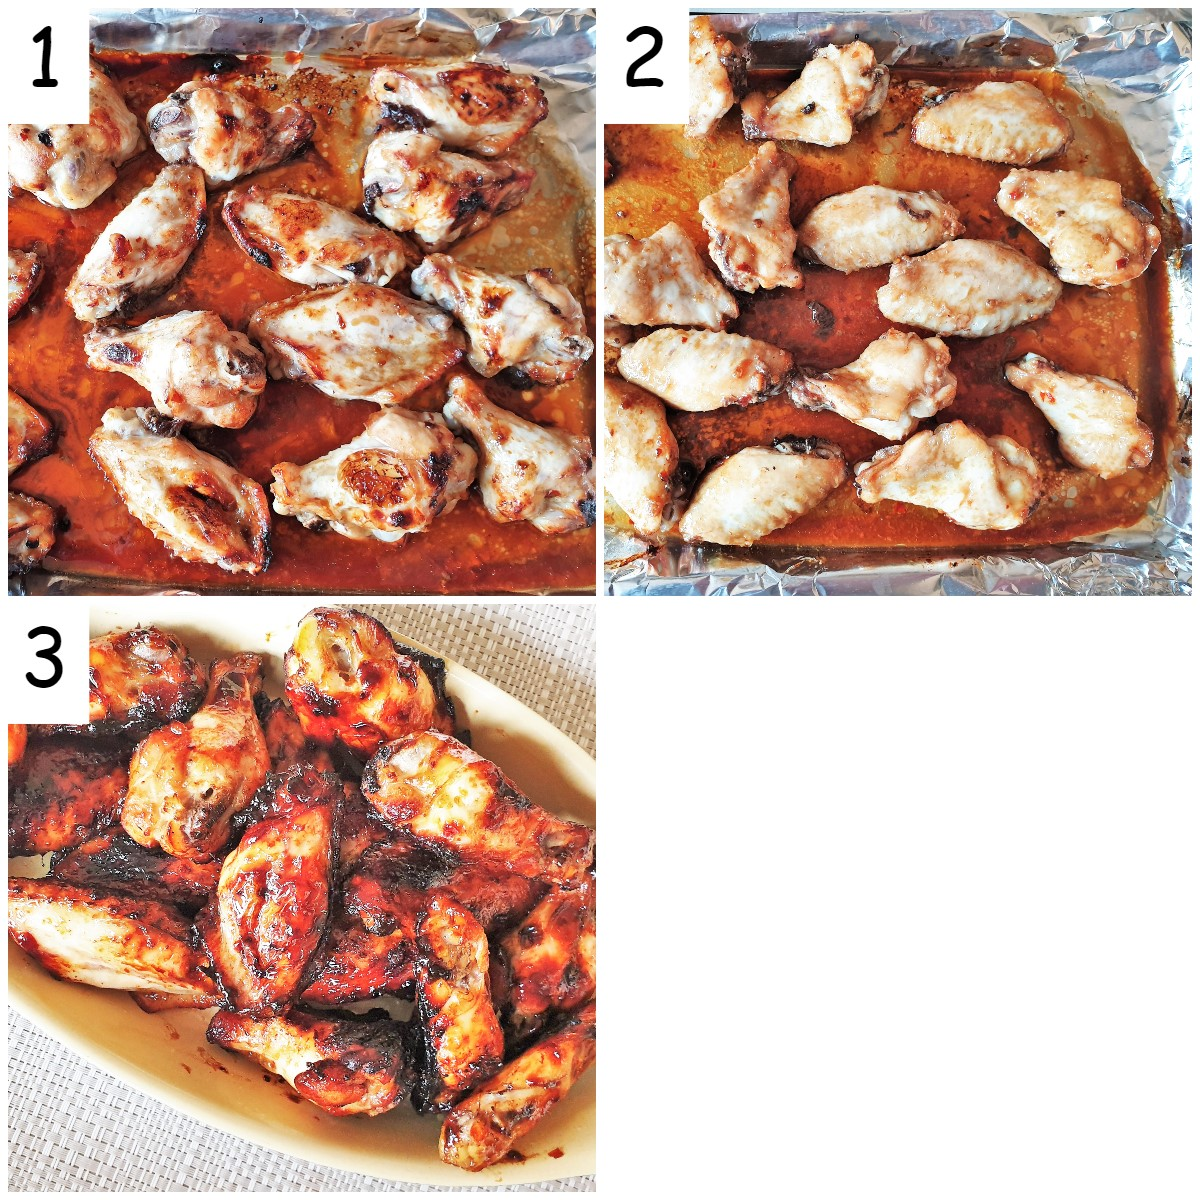 Steps for baking sticky chicken wings.